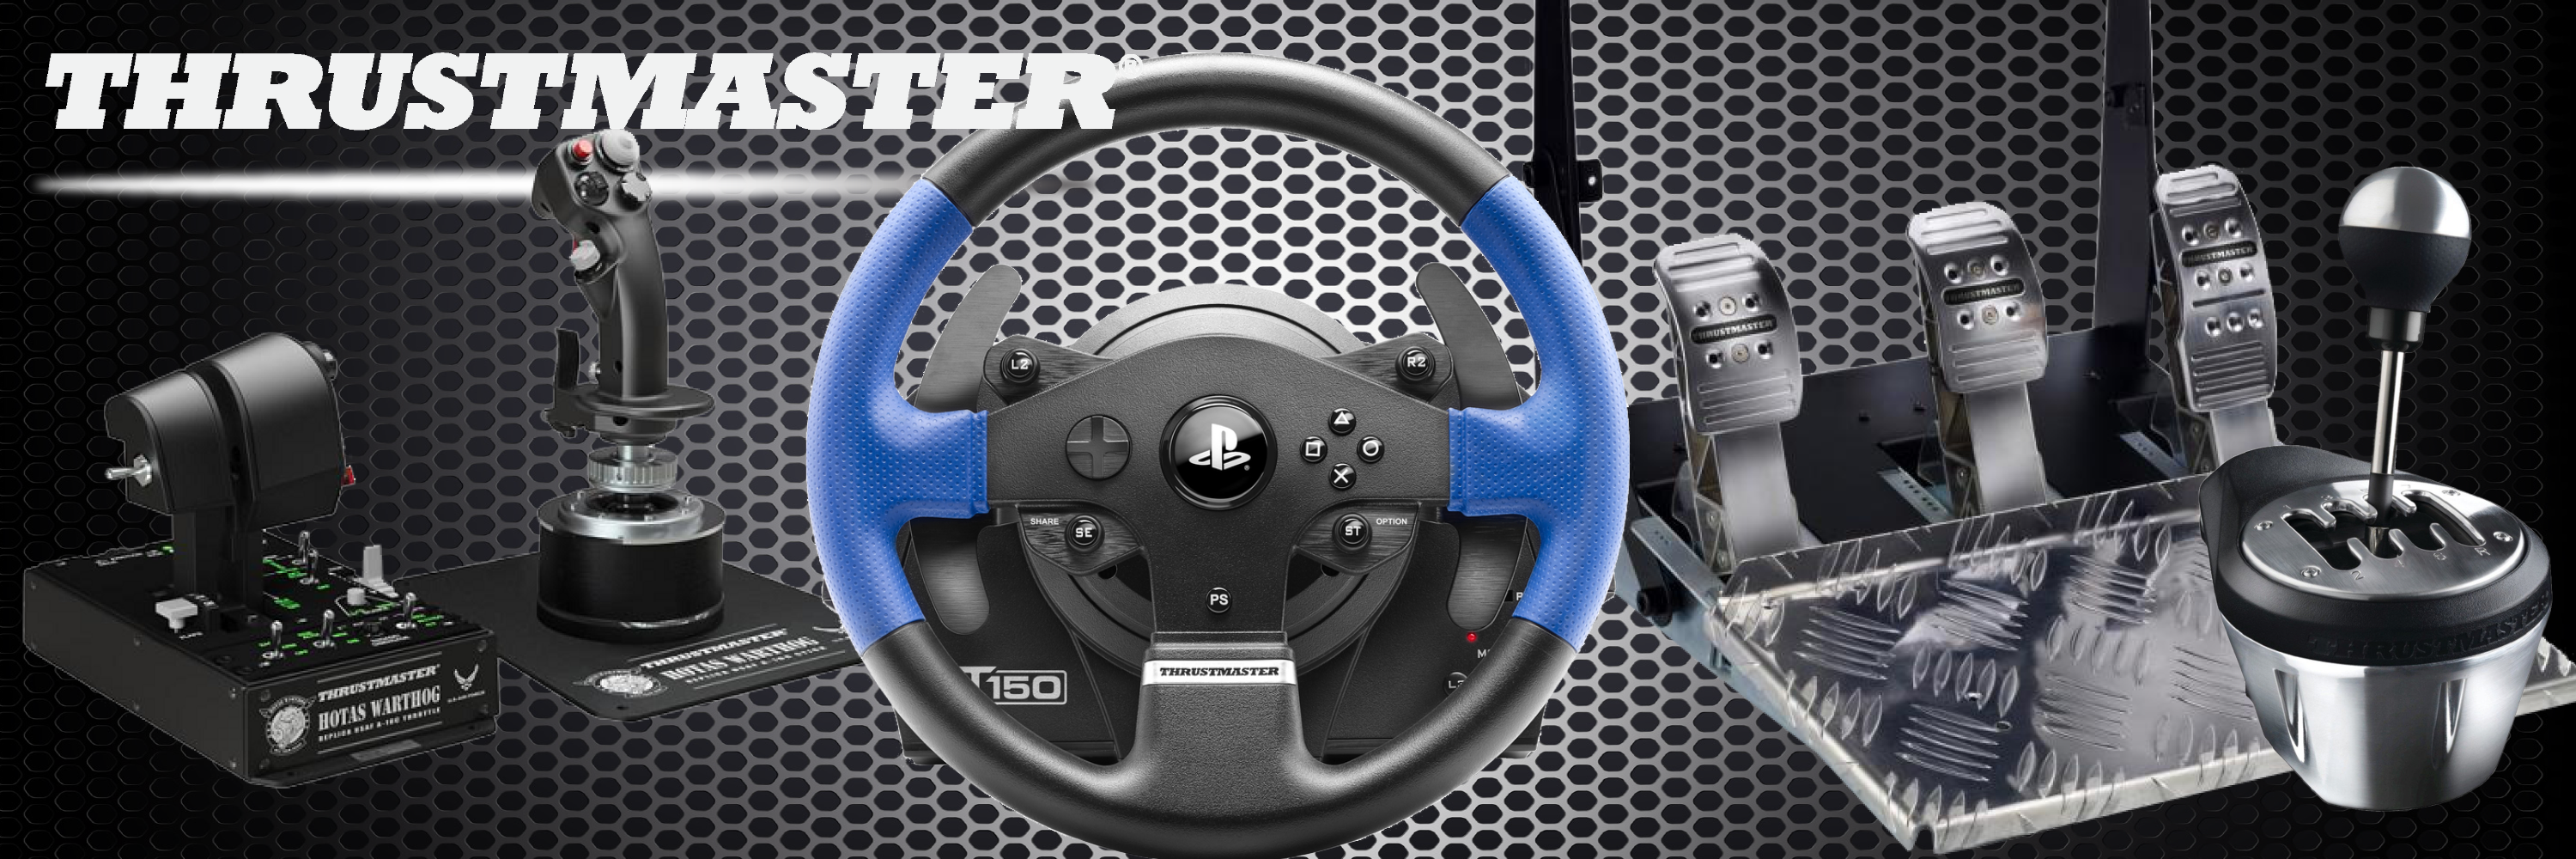 thrustmaster, games driving car simulator with dashboard , compact driving simulator, racing simulator for professional simulator ps4 playstaion simulator, xbox one simualtor, computer pc simulator, best simulator , simulator